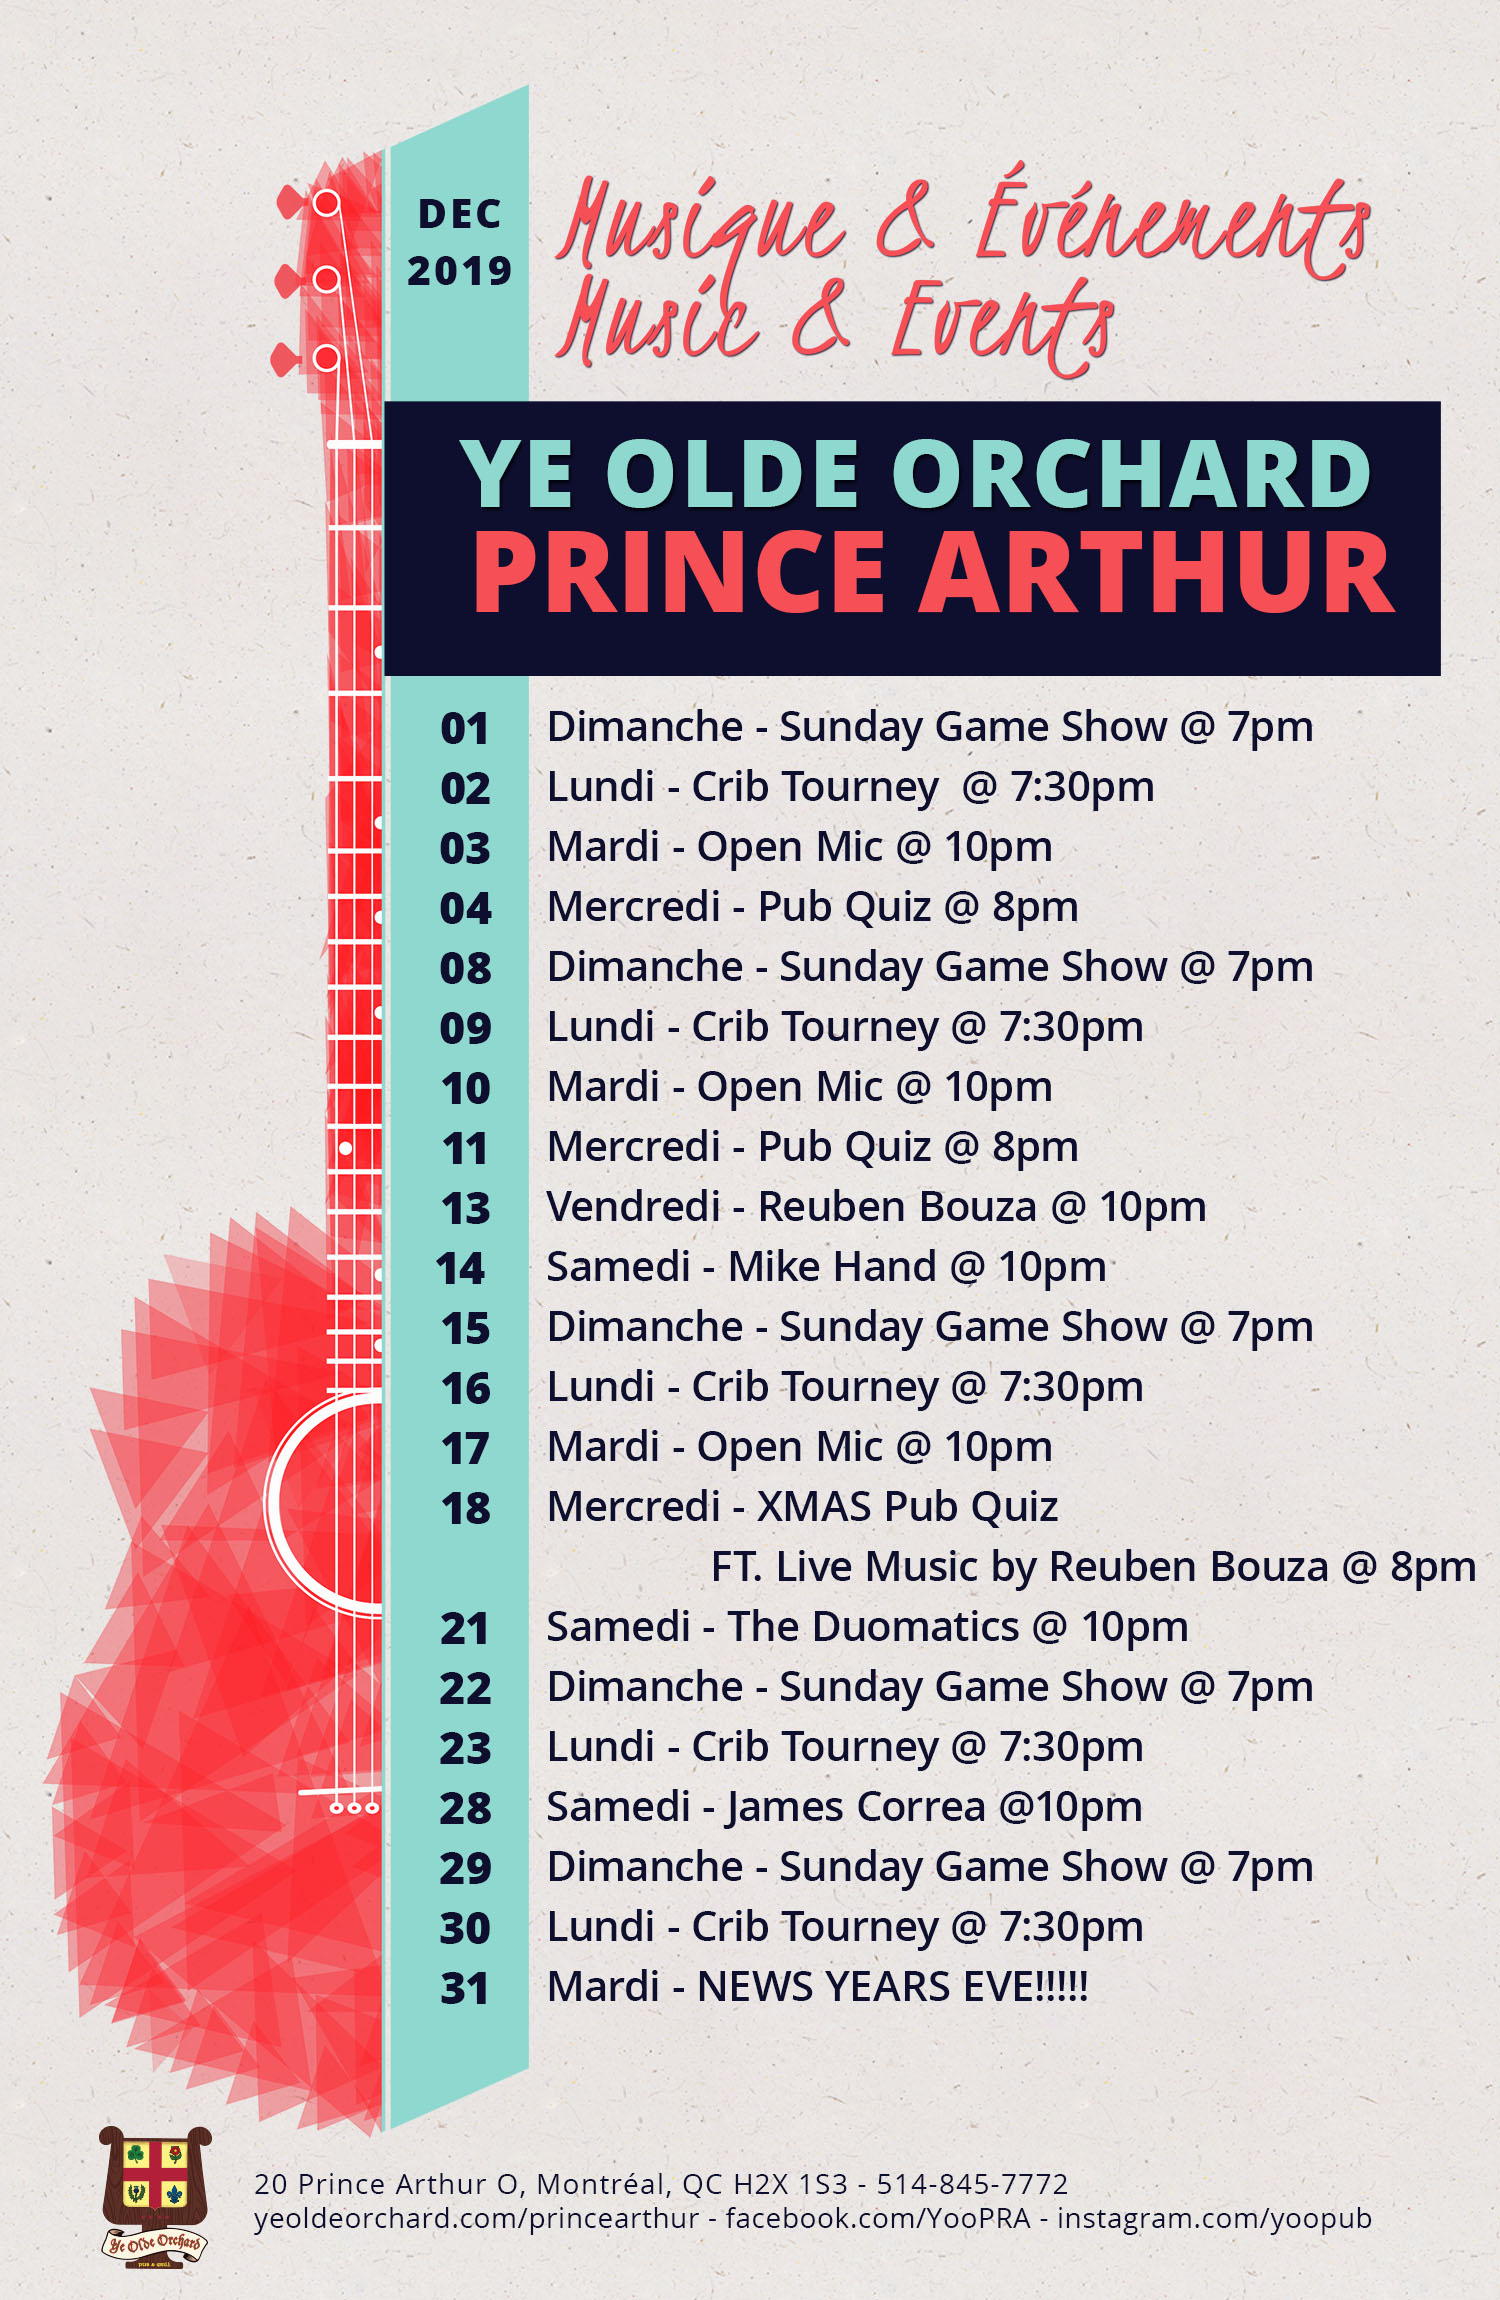 ye-olde-orchard-pub-music-and-events-calendar-prince-arthur-DEC-WEB